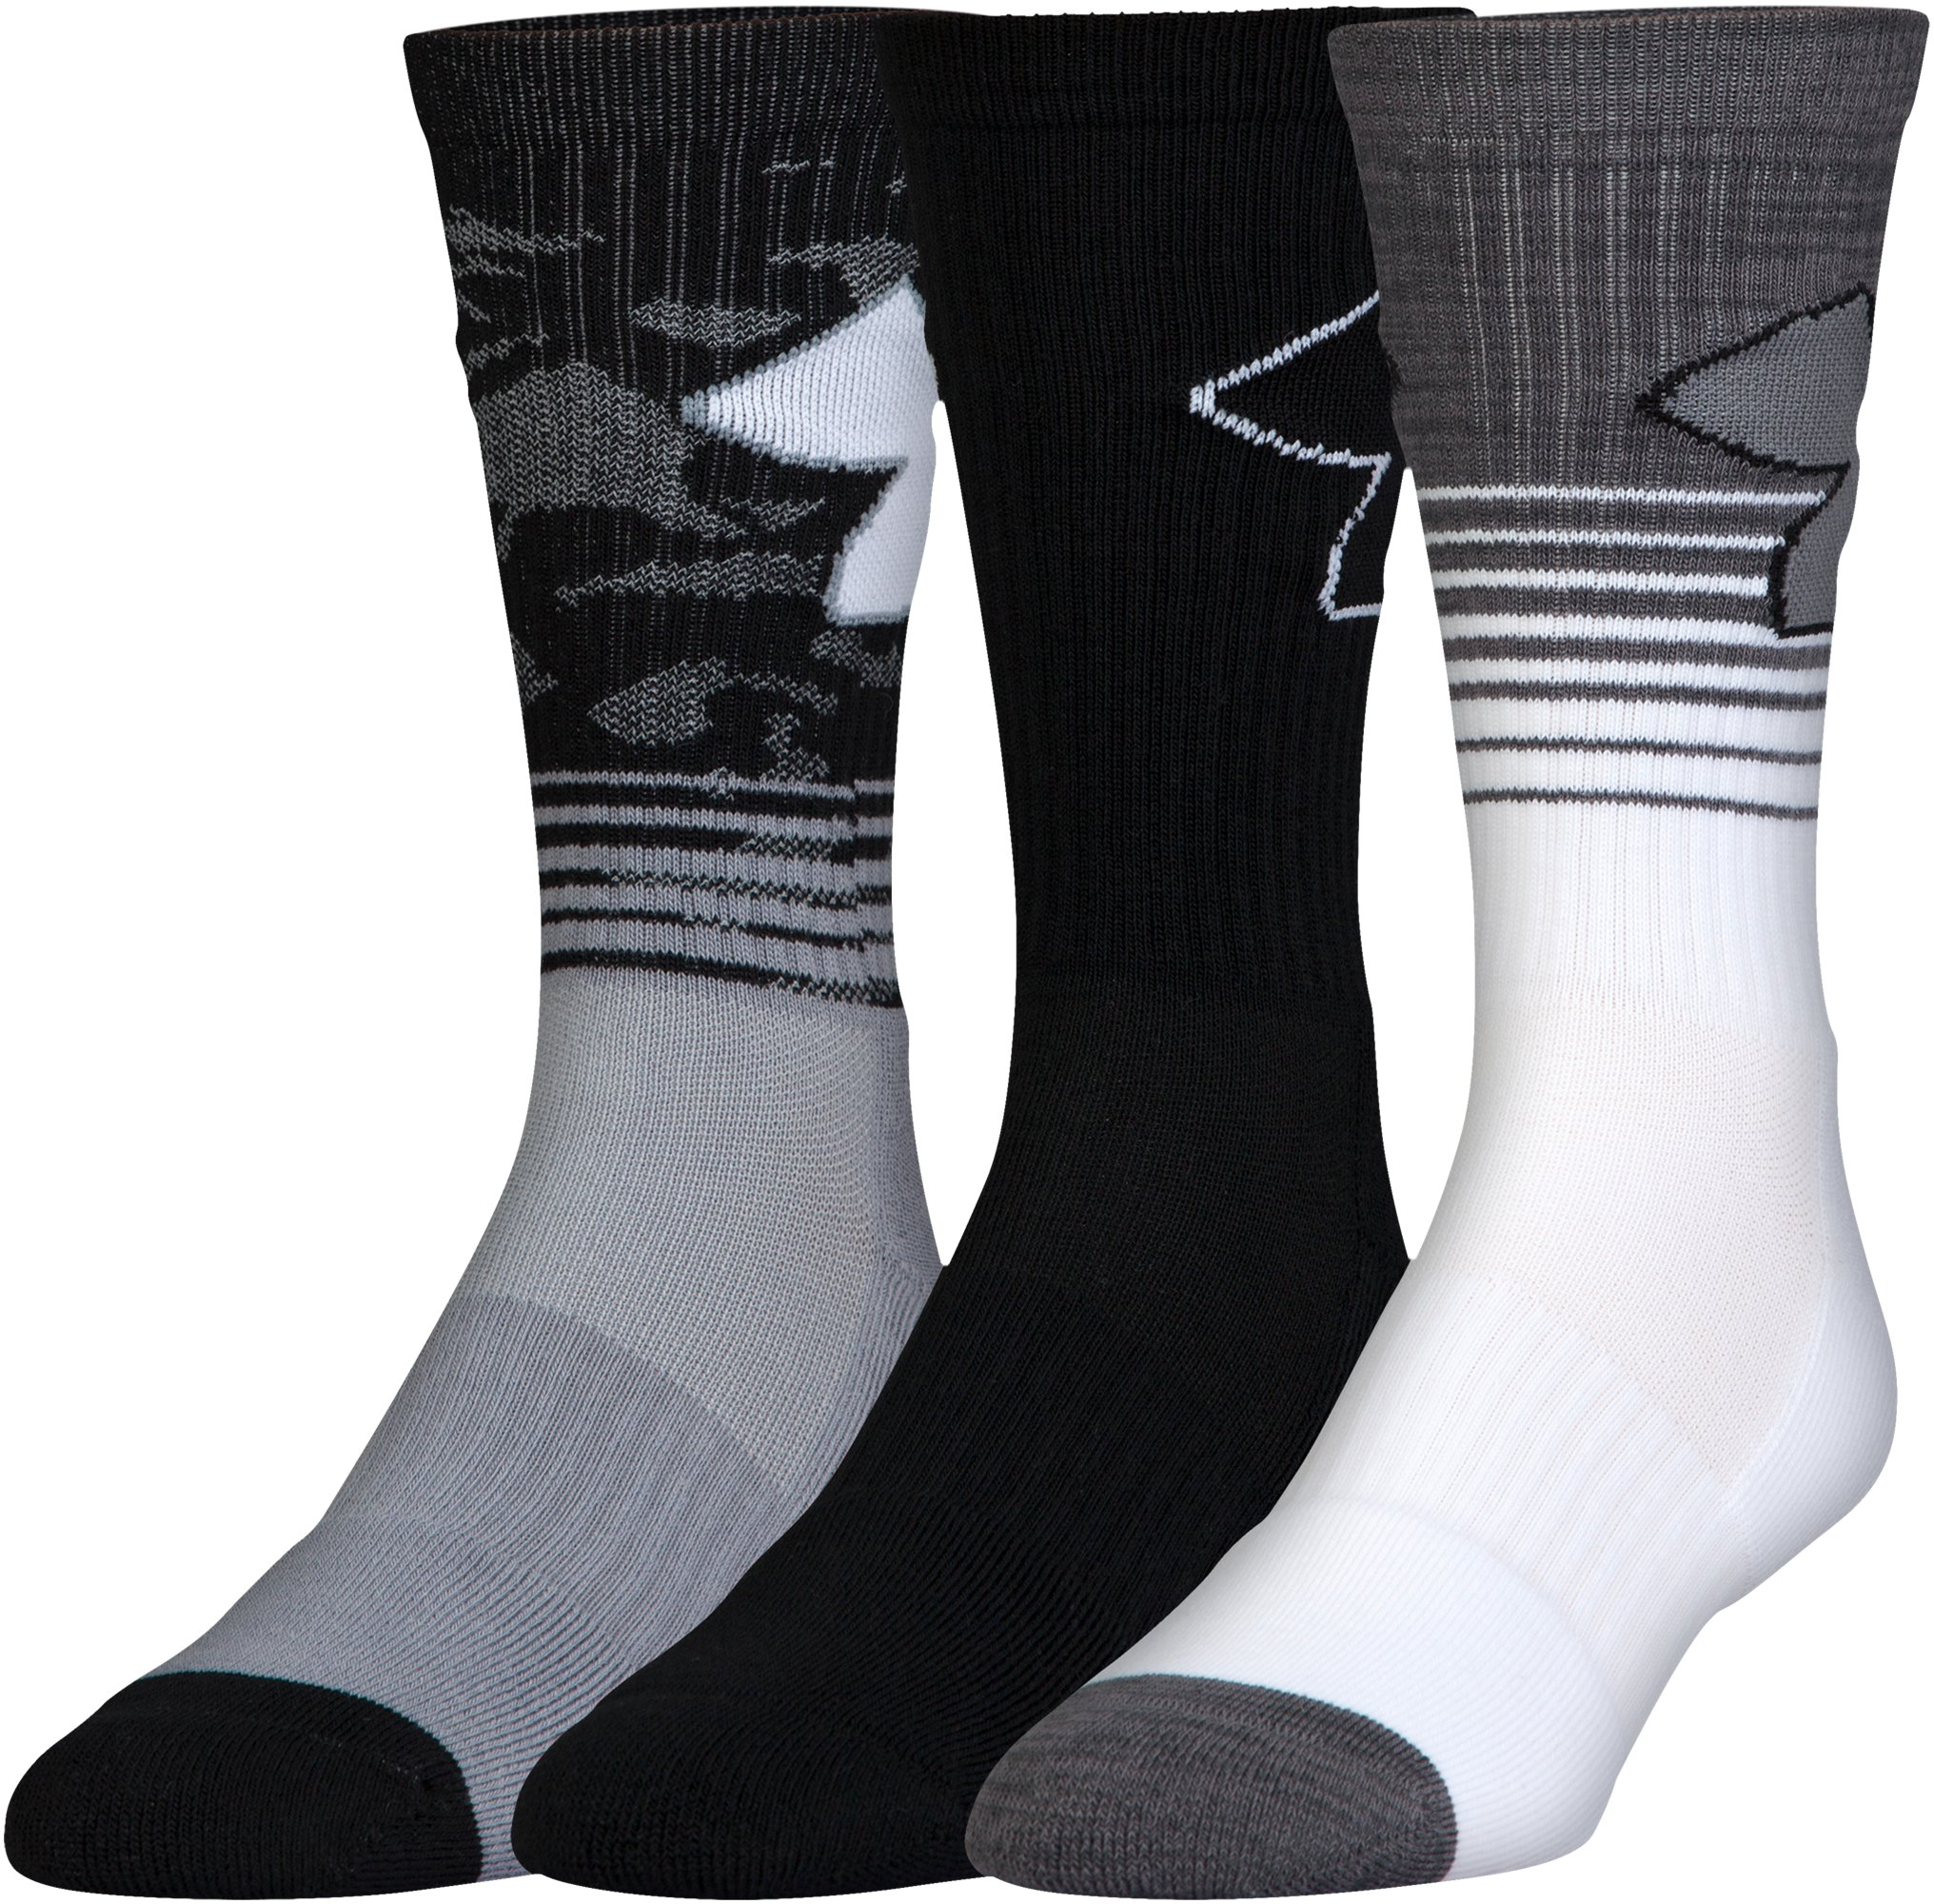 Boys' SC30 Phenom 2.0 Crew Socks – 3-Pack, Steel